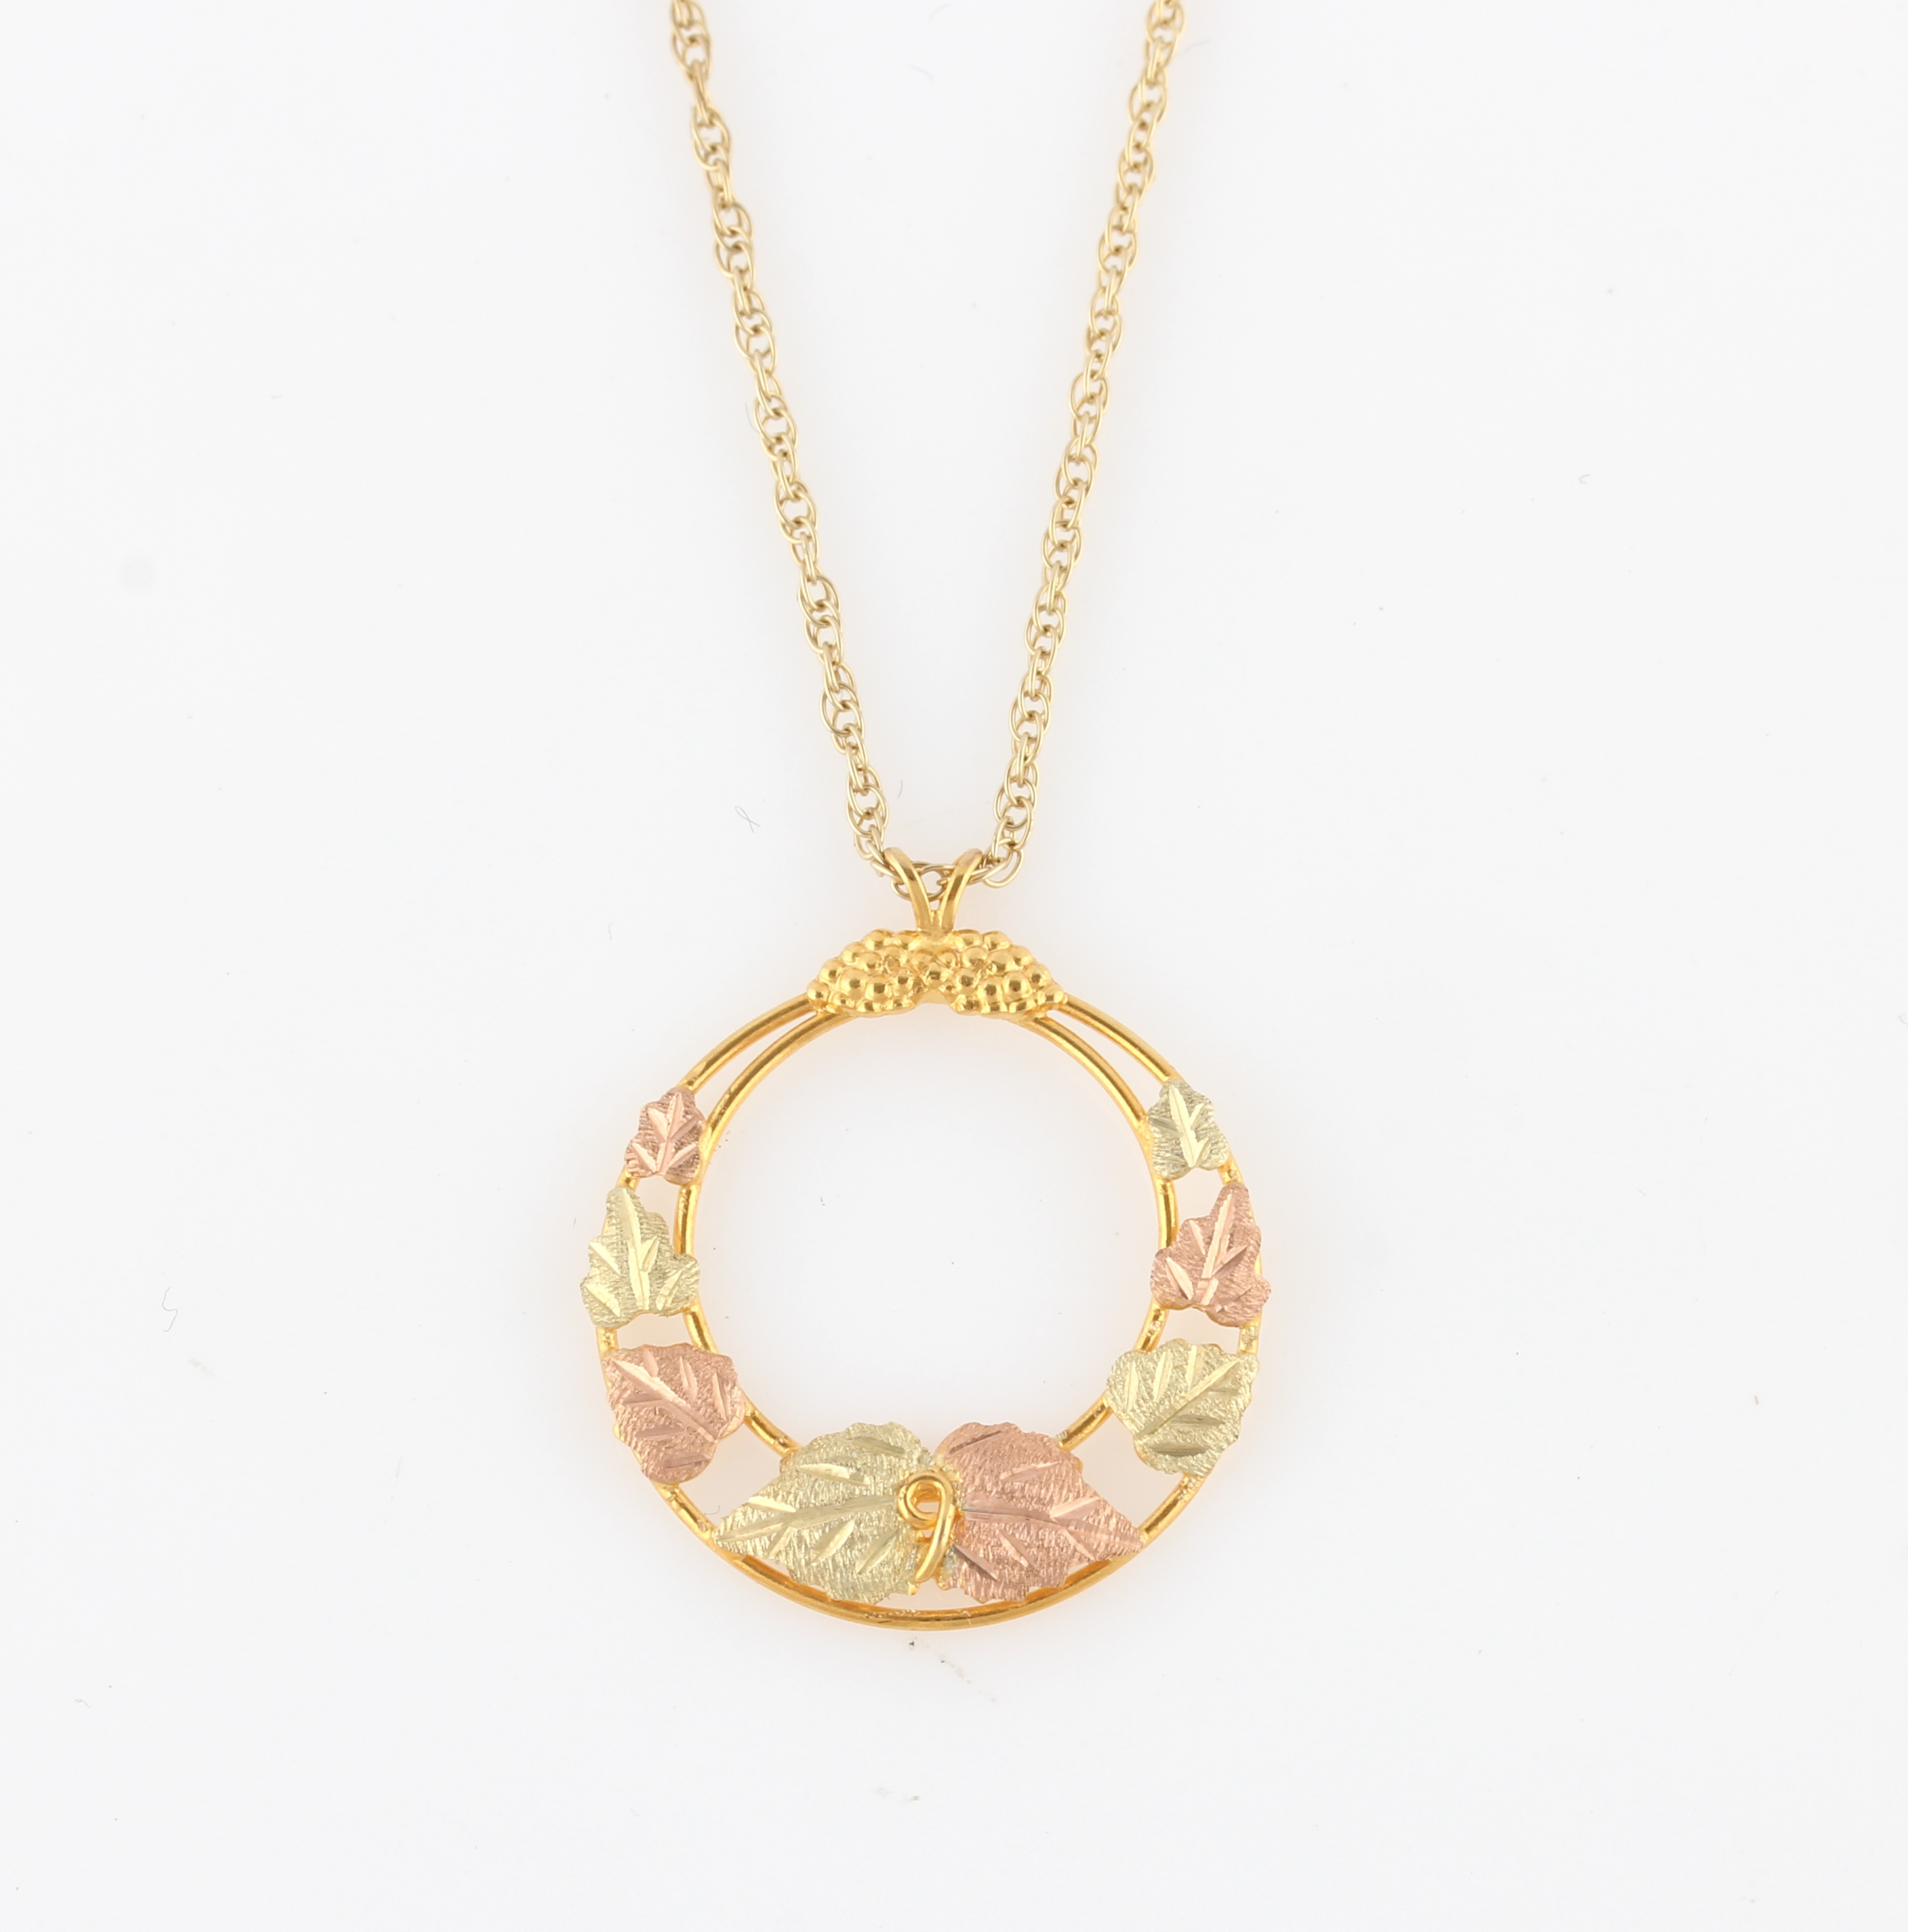 Lot 10 - A 9ct two-tone gold pendant, of circular open metalwork design featuring leaves, hallmarked London